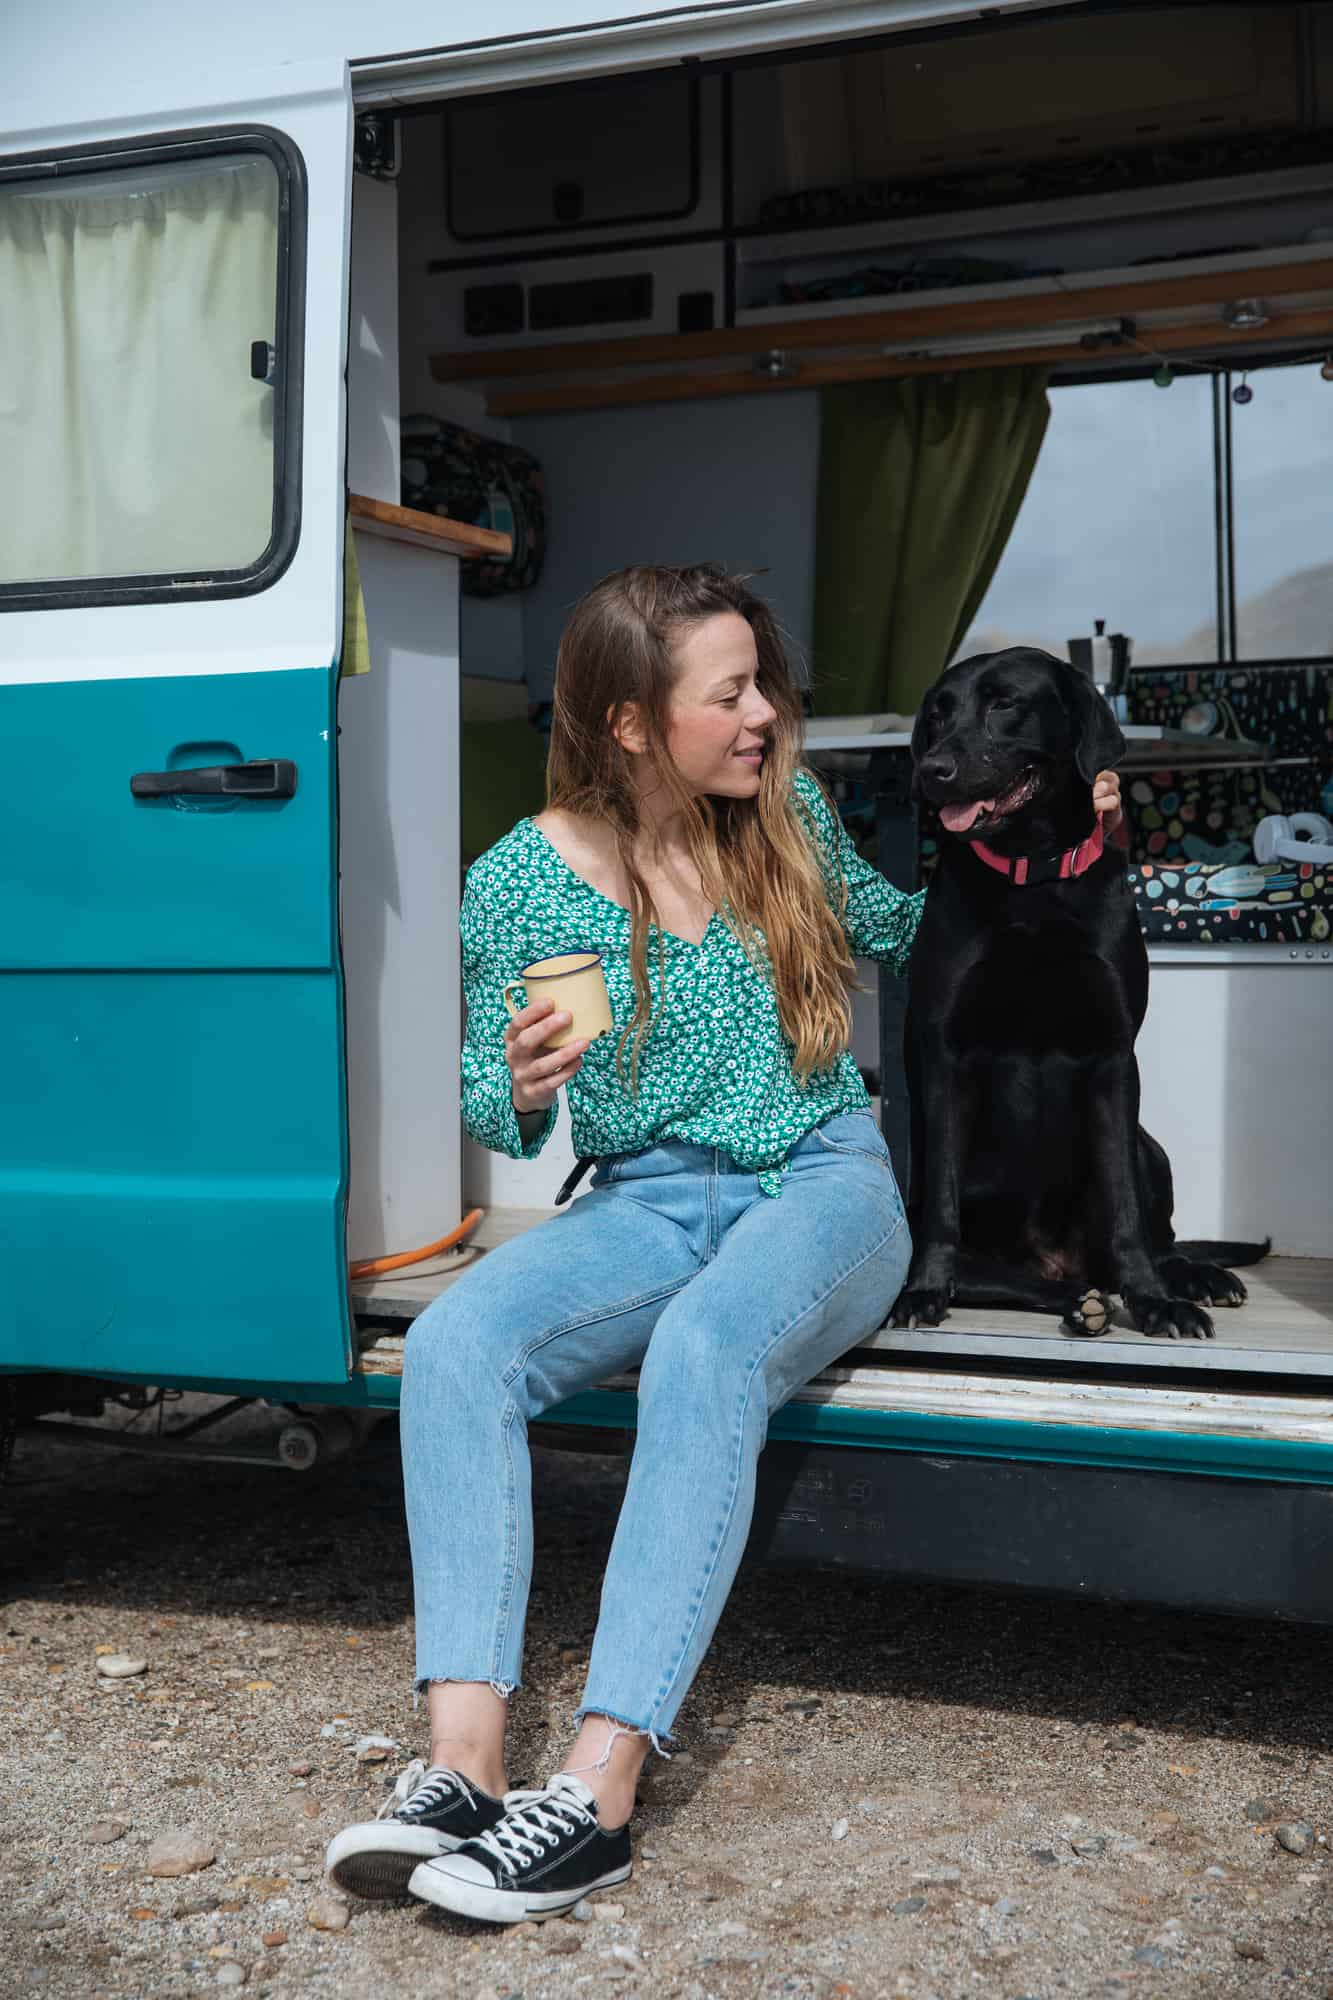 Happy young woman sitting with her black dog in the doorway of a camper van